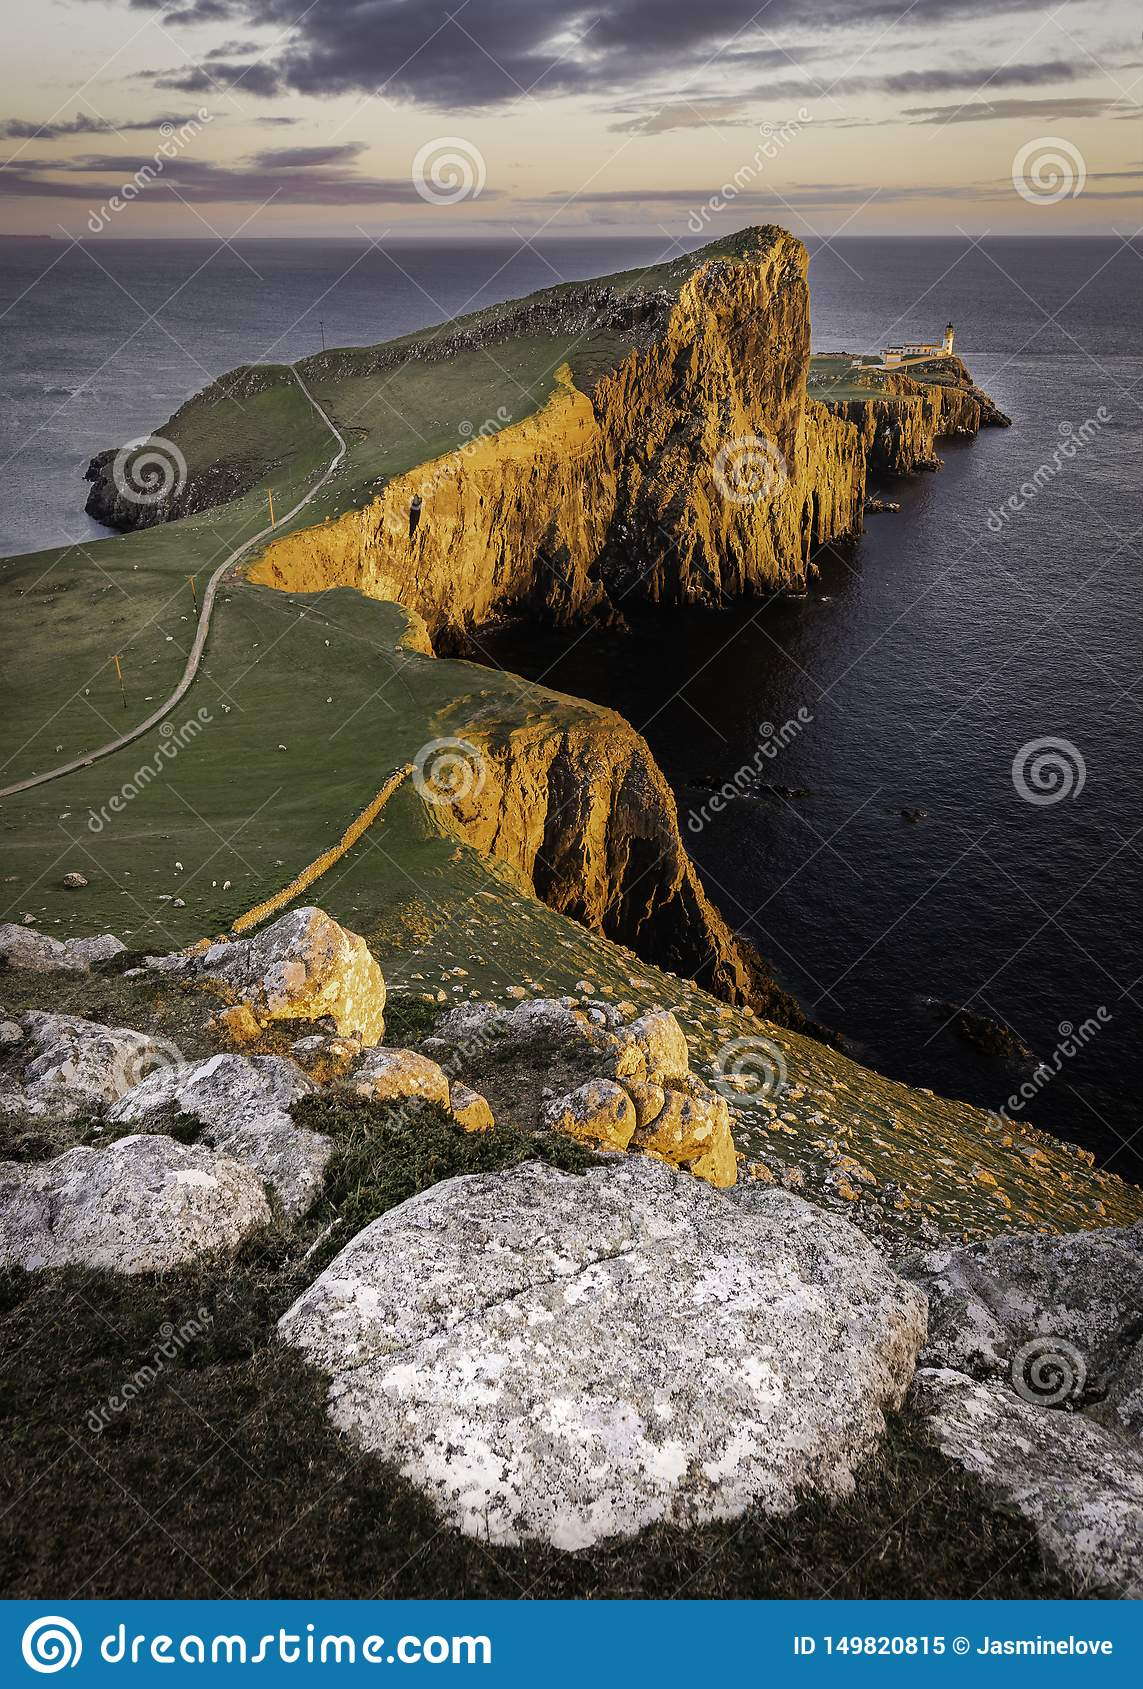 Neist Point, famous landmark with lighthouse on Isle of Skye, Scotland lit by setting sun